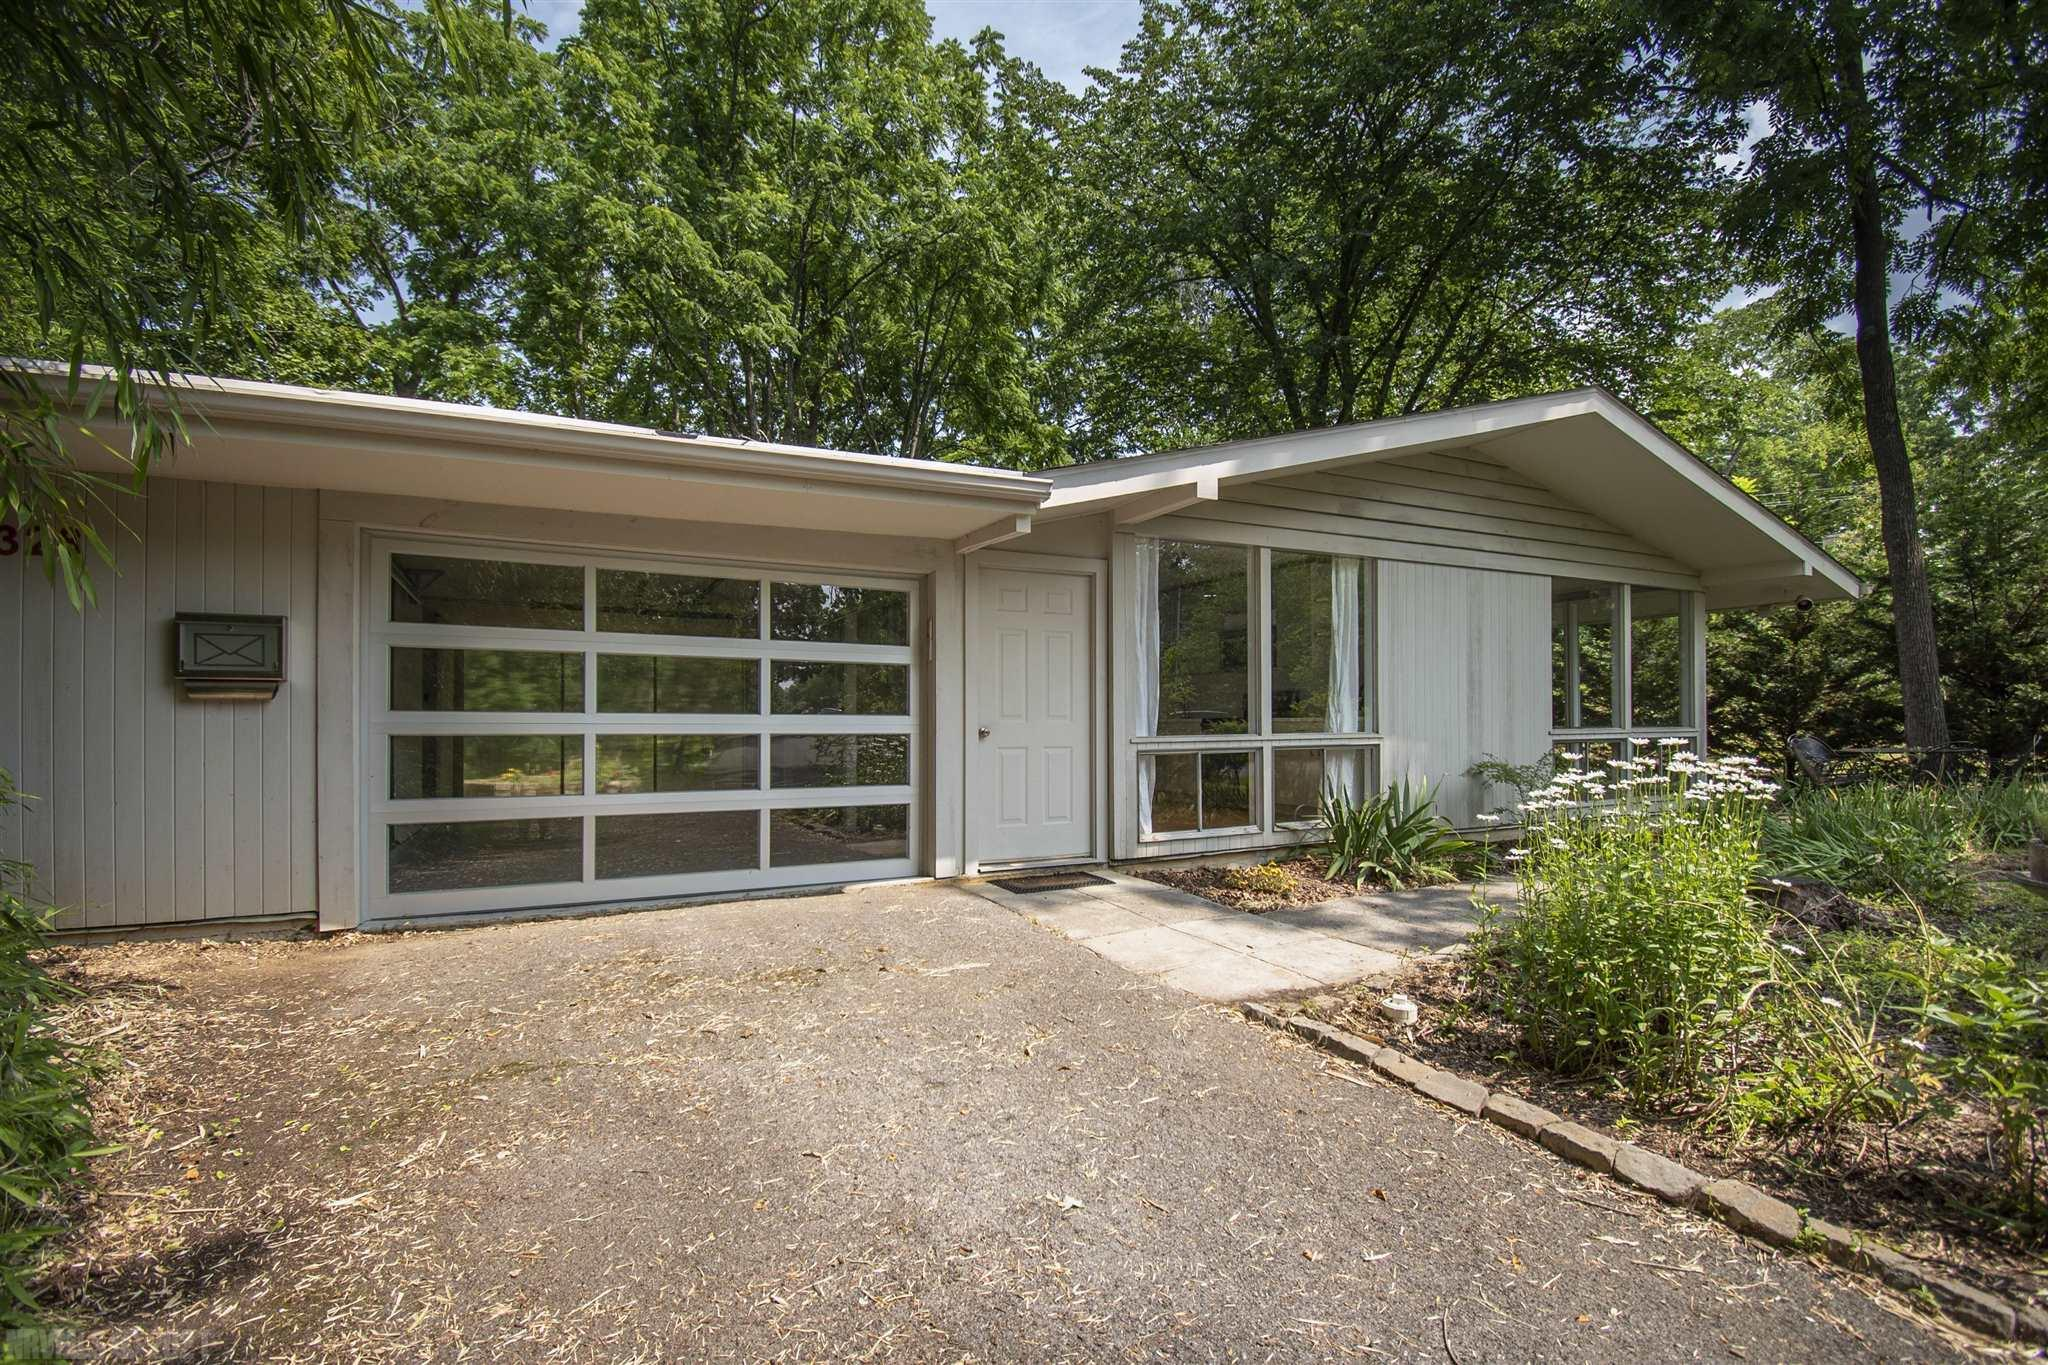 """Own a Piece of ARCHITECTURE HISTORY  in the coveted Miller Addition neighborhood.  This award winning home was a collaborative project in 1955 between VPI, National Home Builders Association, a New York City magazine and a national Nail Company to show how a young family could live comfortably in a small, modern home.  So much engineering and planning went into this house that it was nick named """"The House That Nails Built.""""   In true Mid-Century Modern style this home features floor to ceiling windows with an abundance of sunlight reflecting off crisp white walls and gleaming hardwood floors. Every inch of this home is well thought out and the location cannot be beat: walk to Downtown or to Lane Stadium."""